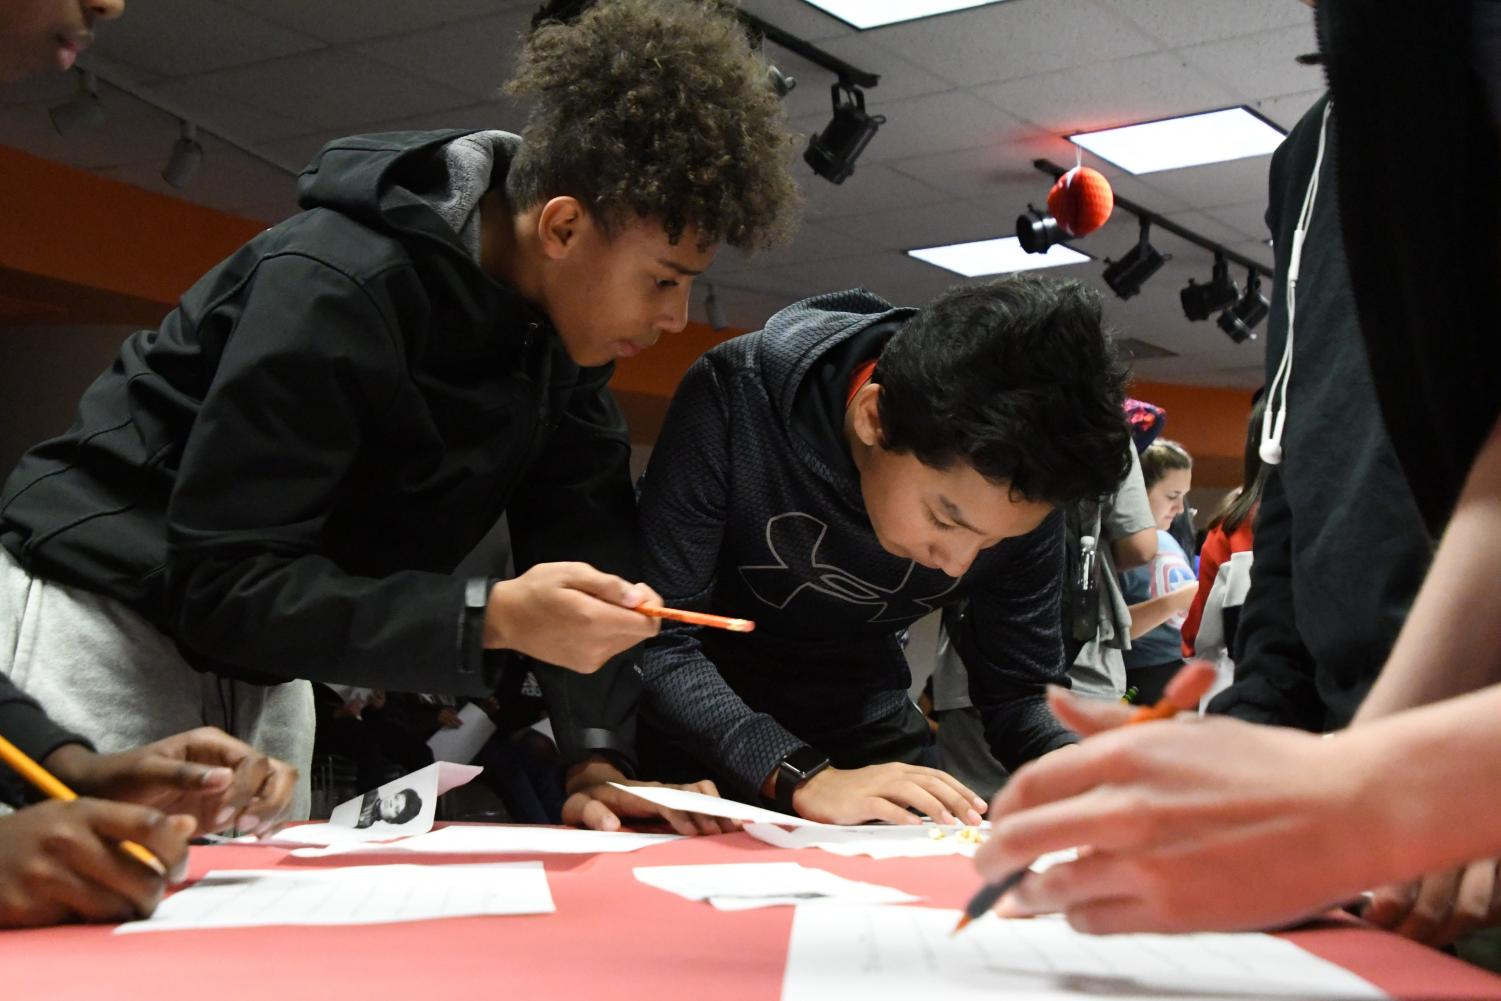 Freshman students help each other fill out their bingo boards during an activity during their social studies class in C350 Nov. 6.